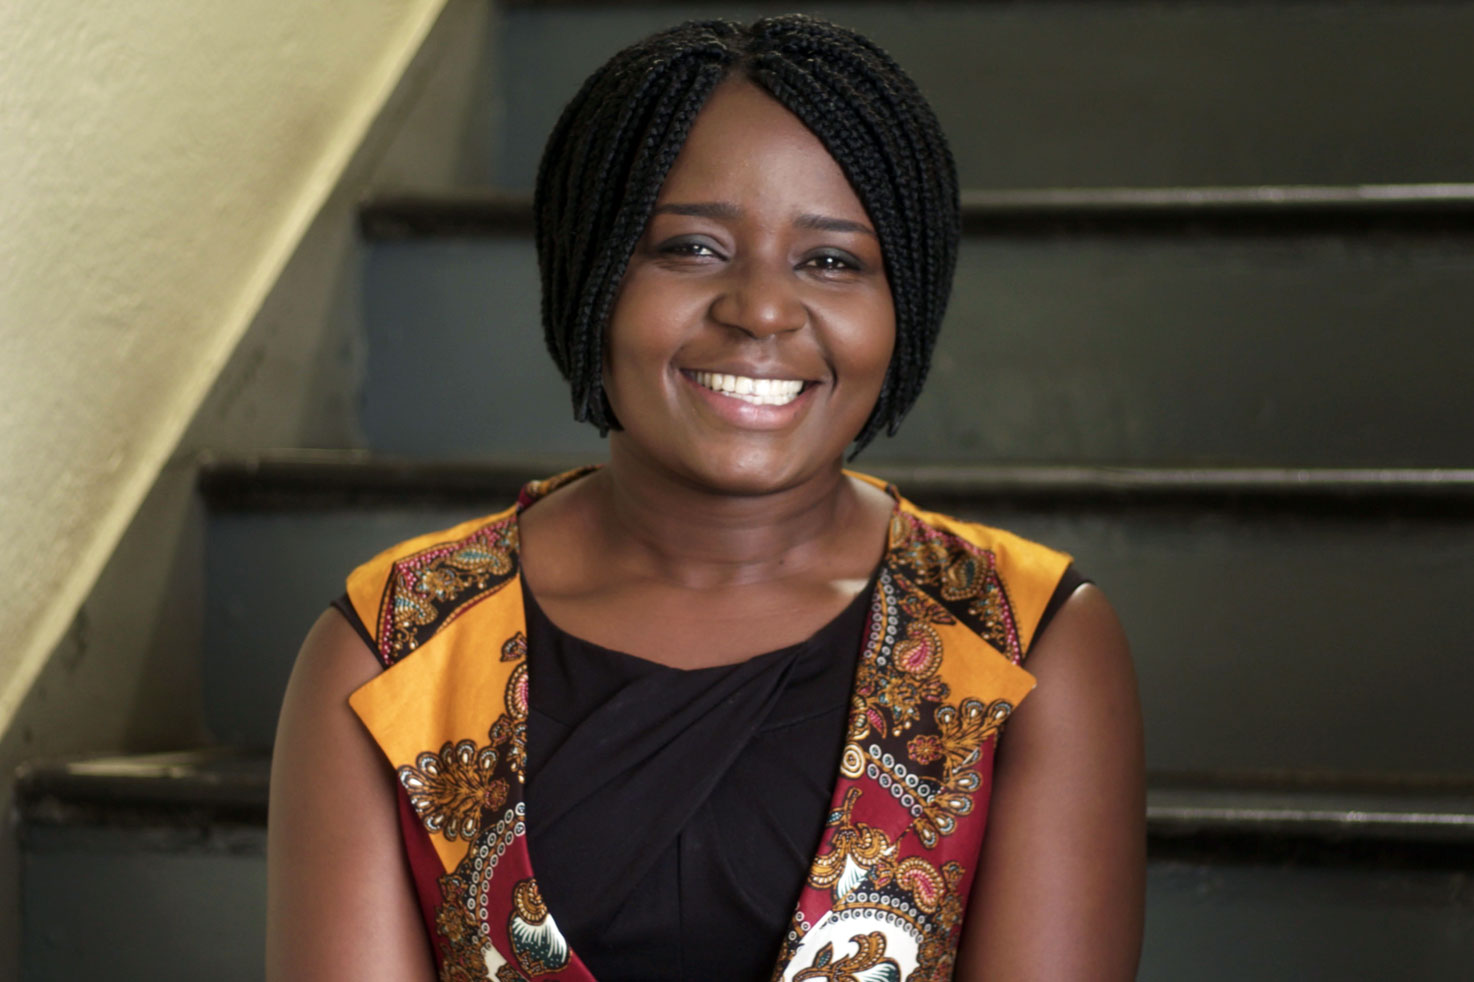 Abigail, supported through school by Camfed, now a leader